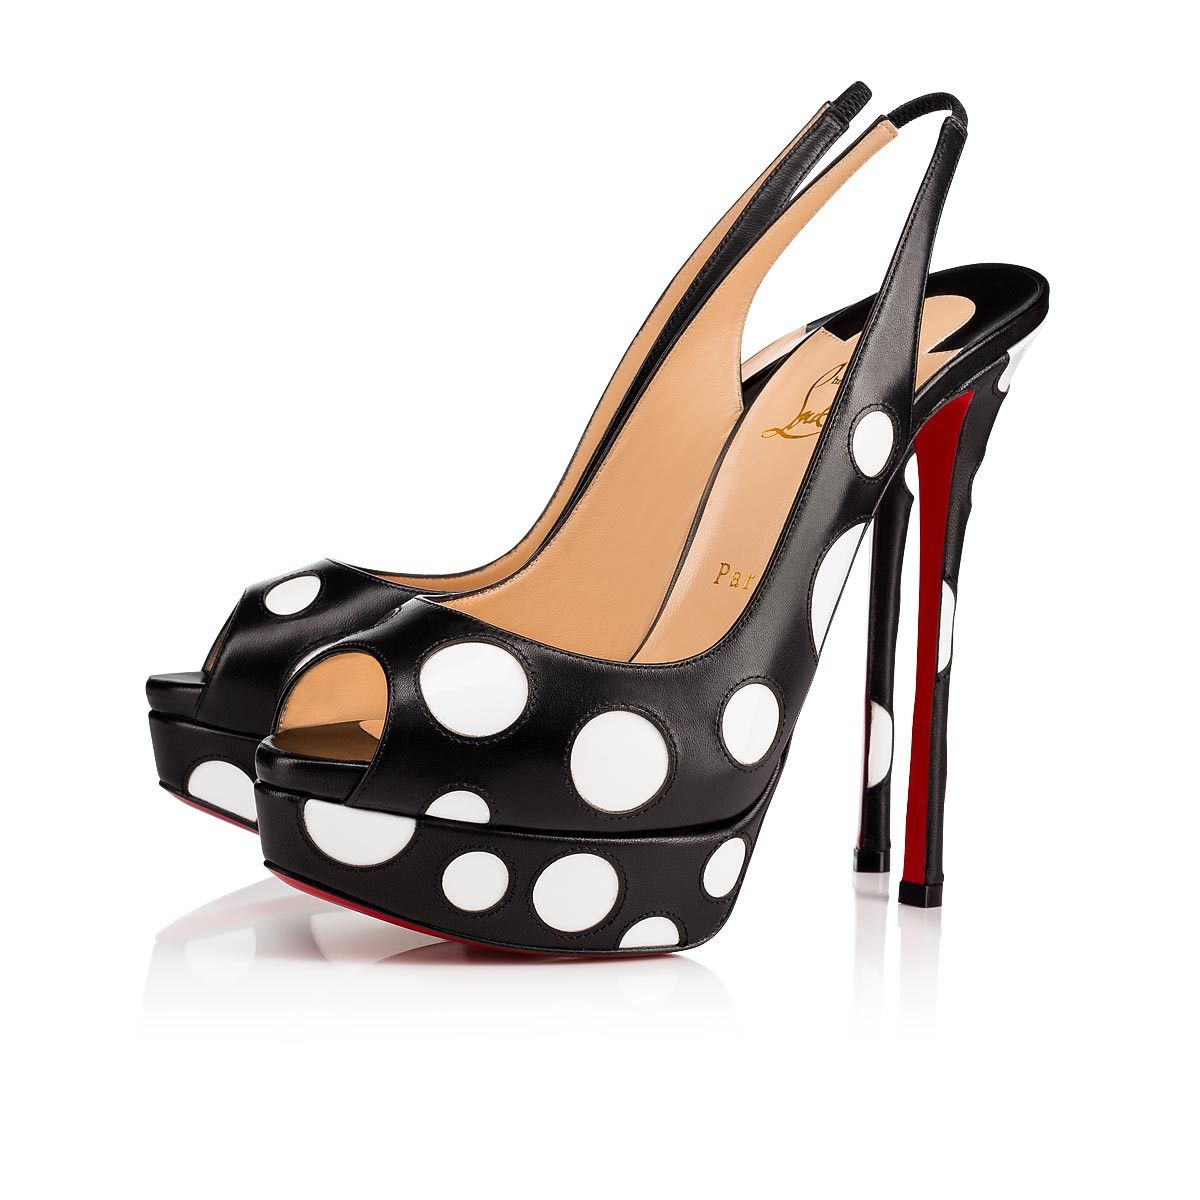 0b1d44d0c402c Christian Louboutin United States Official Online Boutique - Bubble Up 150  Black Latte Leather available online. Discover more Women Shoes by Christian  ...